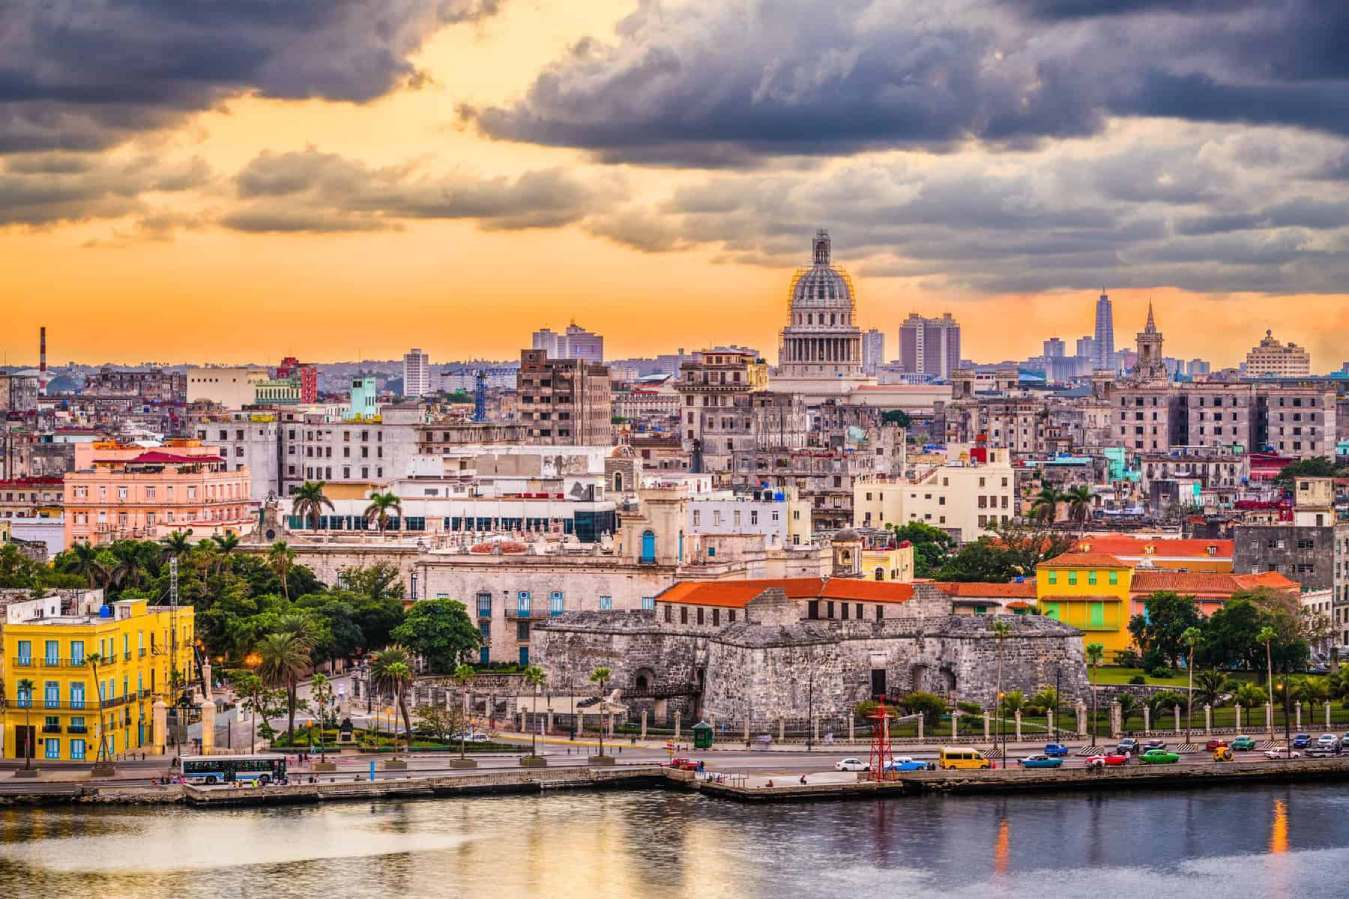 Havana, Cuba downtown skyline with the Capitolio at sunset.